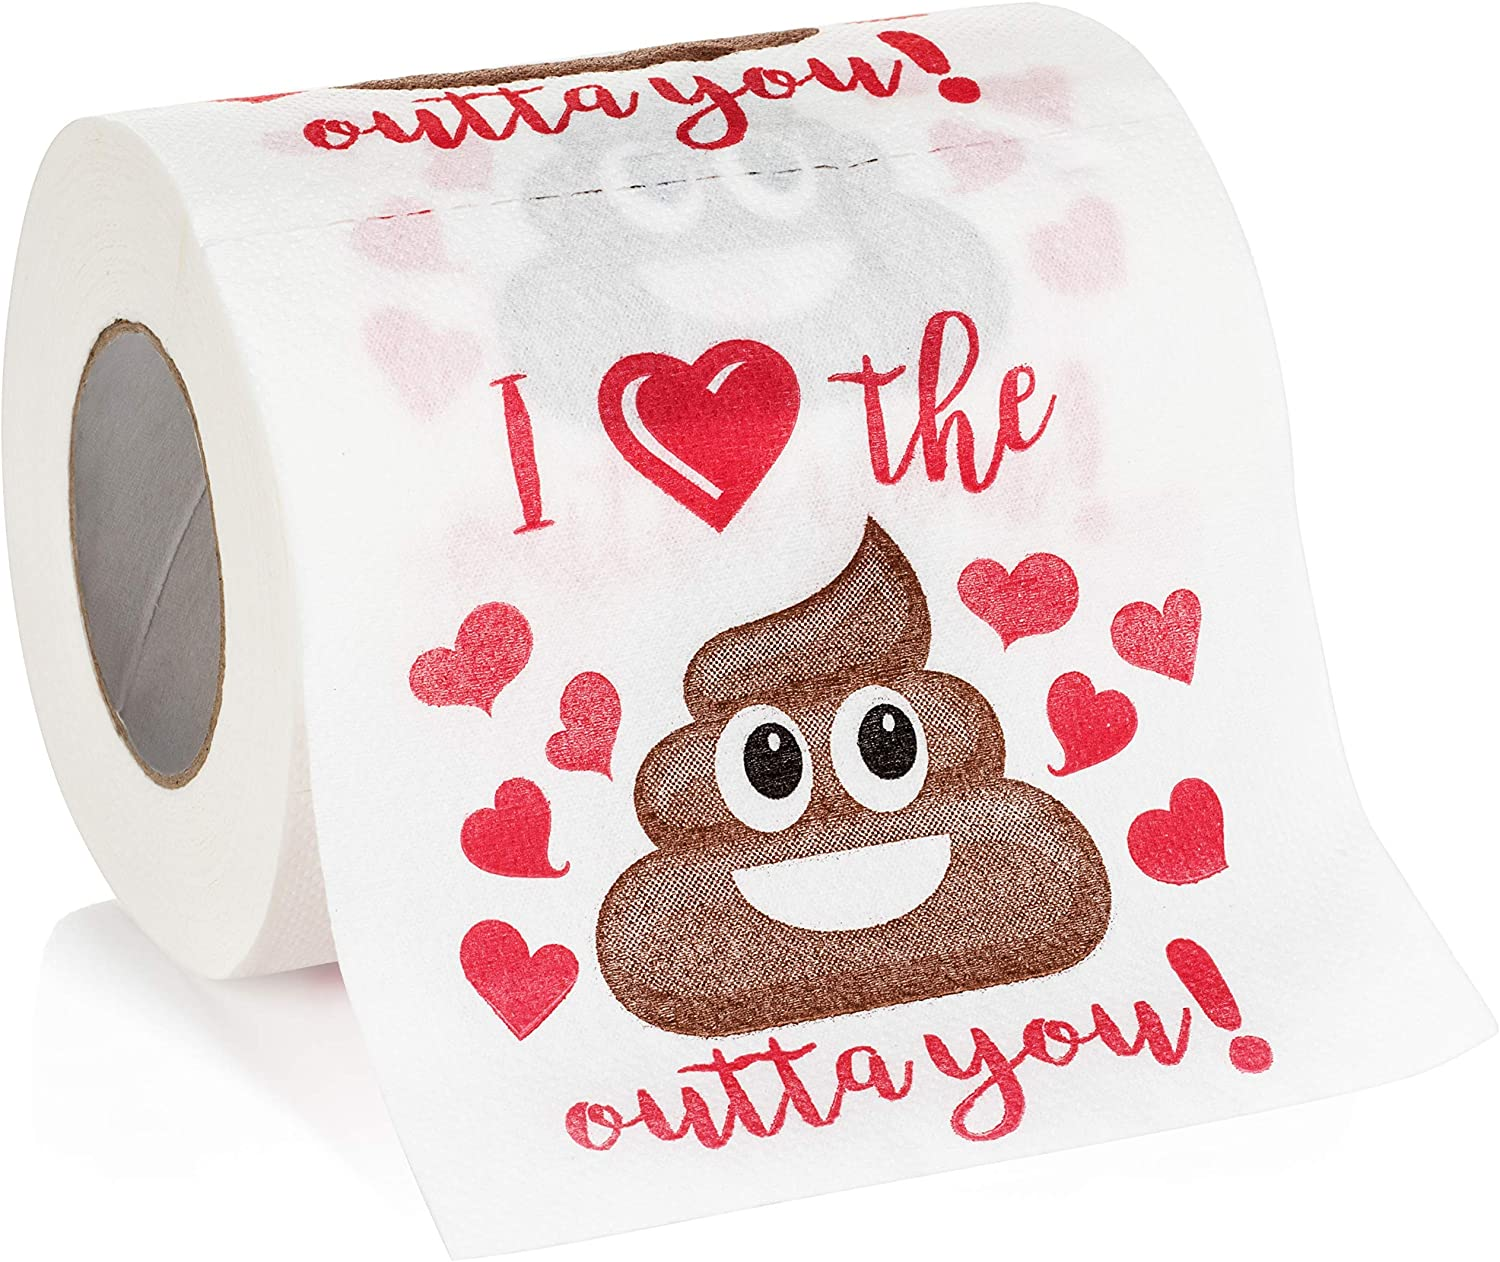 Let It Go Funny Gift Decorative Toilet Paper